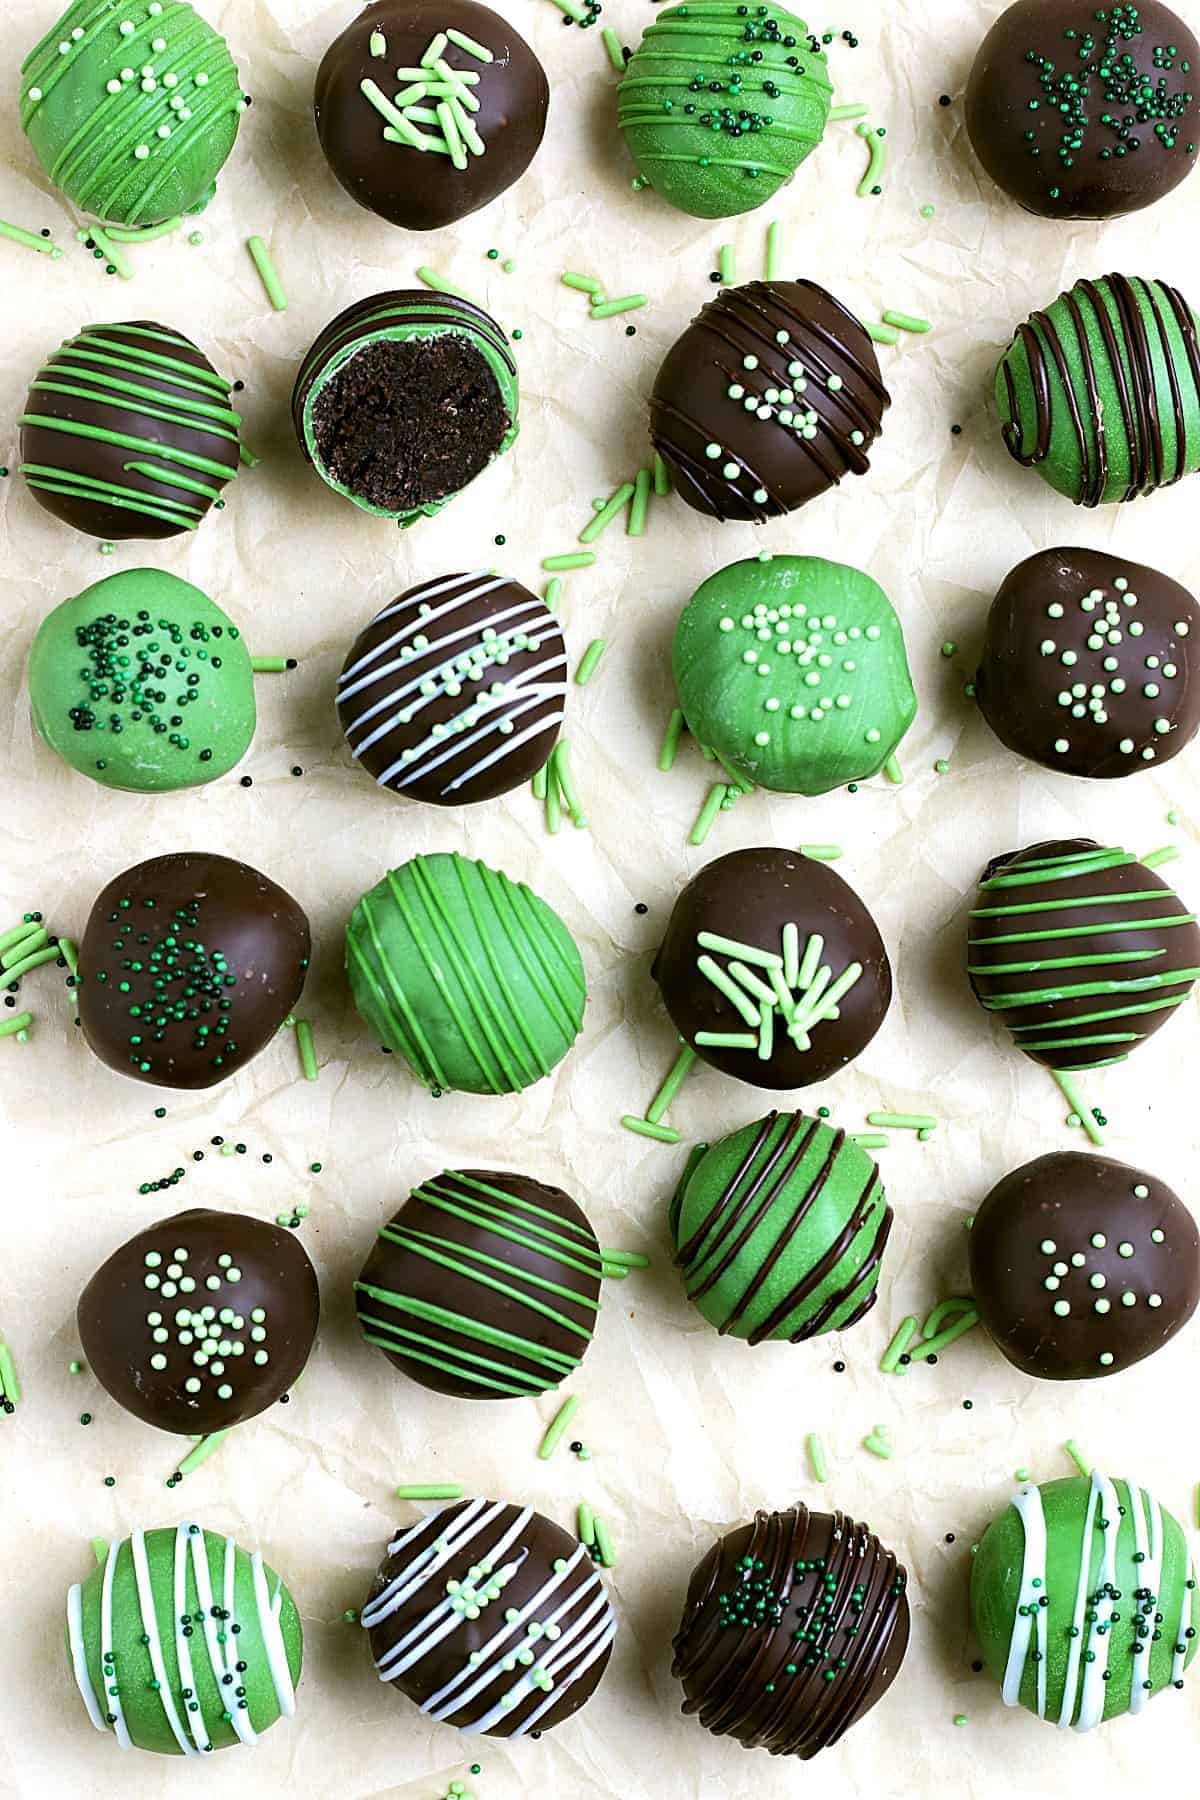 Overhead view of lined up mint cookie dough truffles candy.